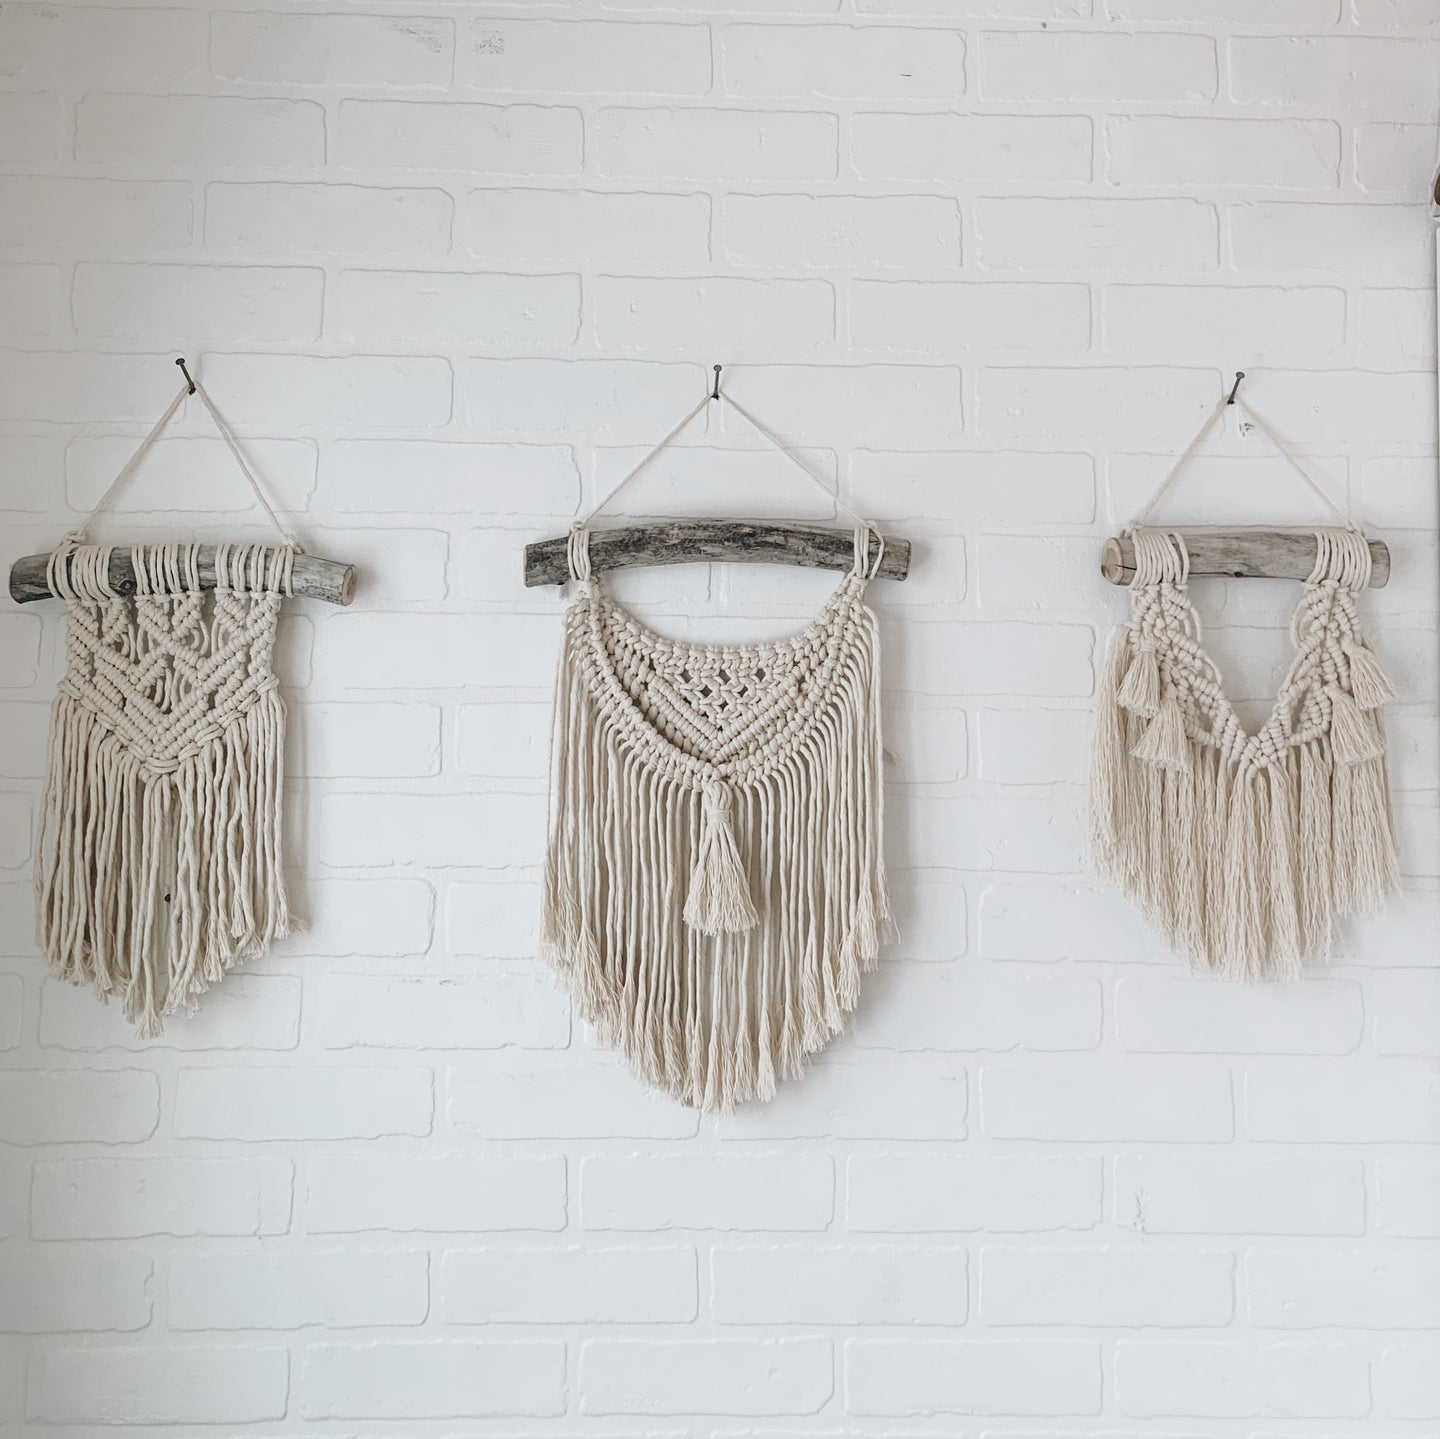 Custom Order - 'Tiny Trio' Macrame Hangings